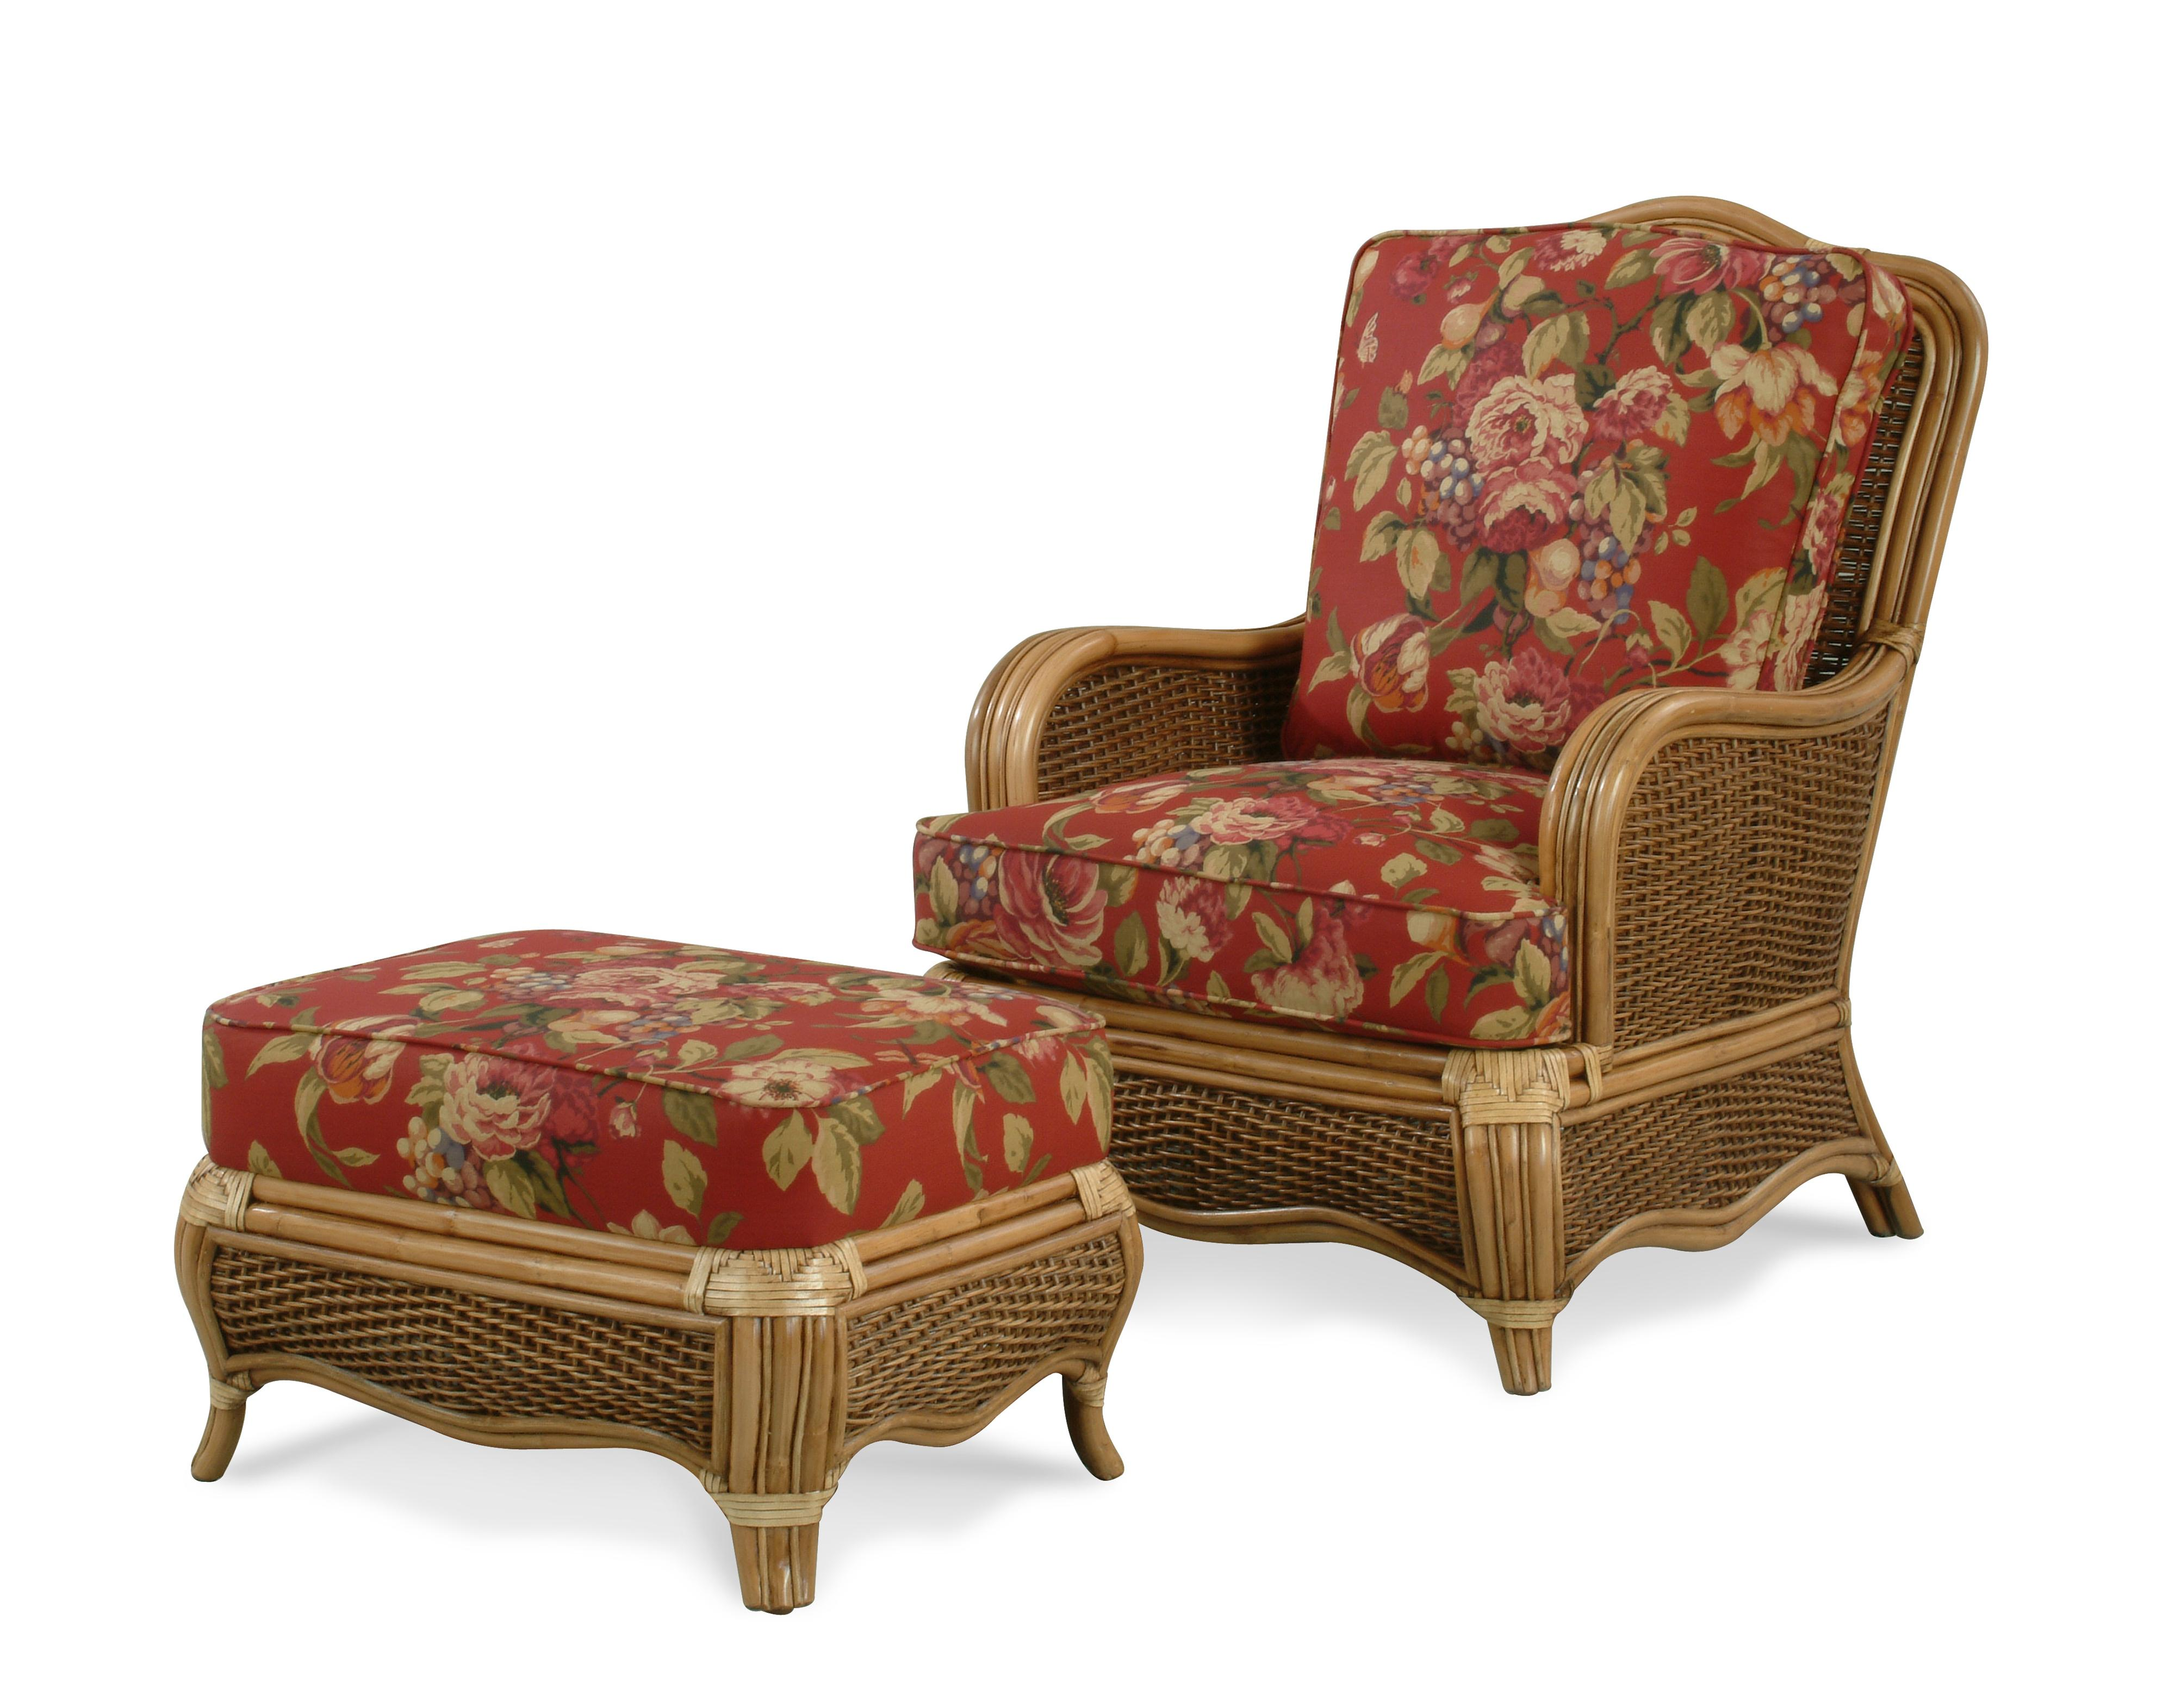 Shorewood chair & ottoman by Braxton Culler at Alison Craig Home Furnishings